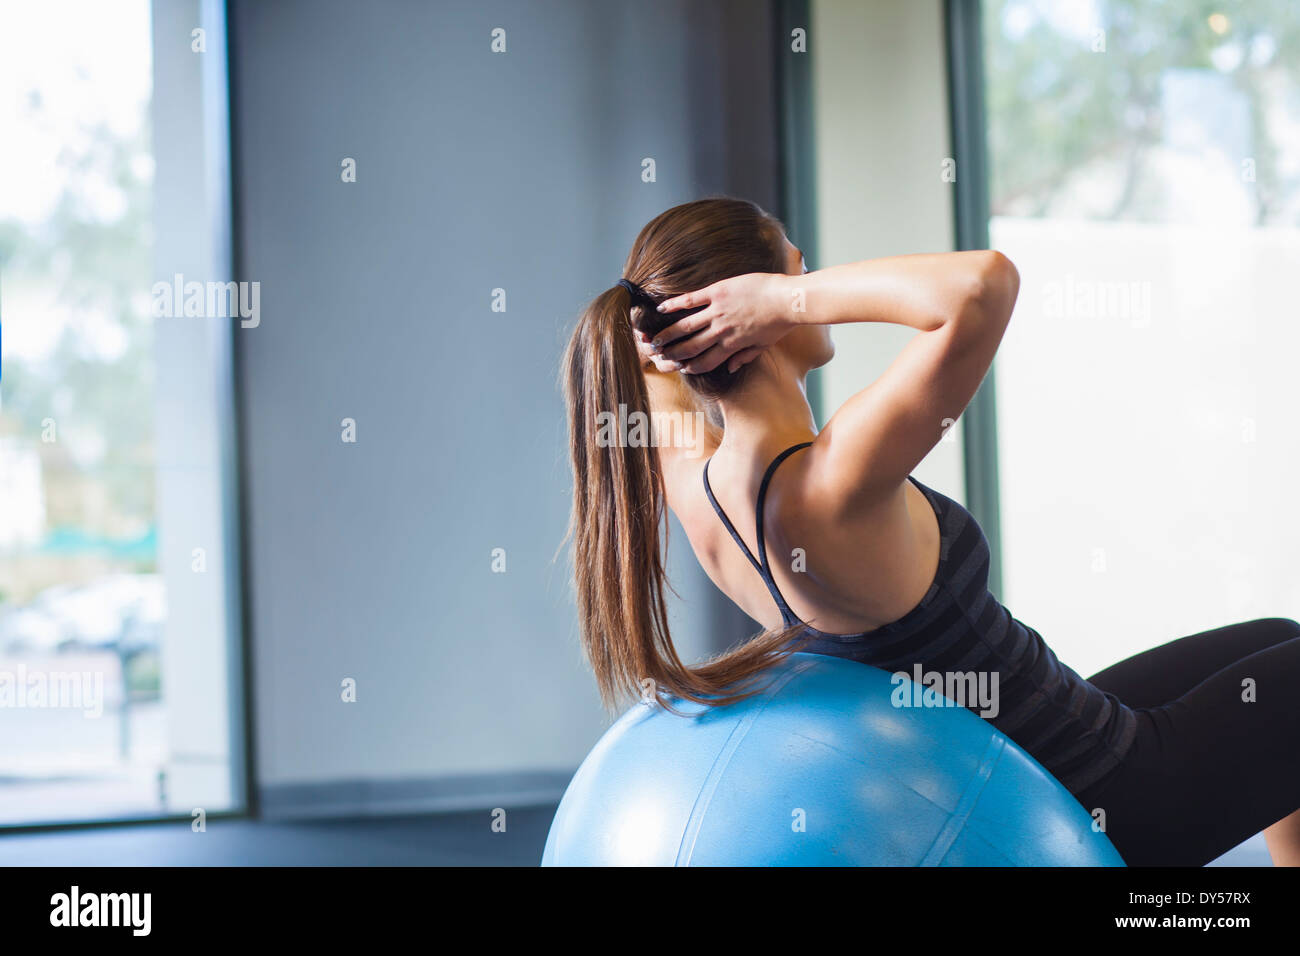 Young woman working out with gym ball - Stock Image